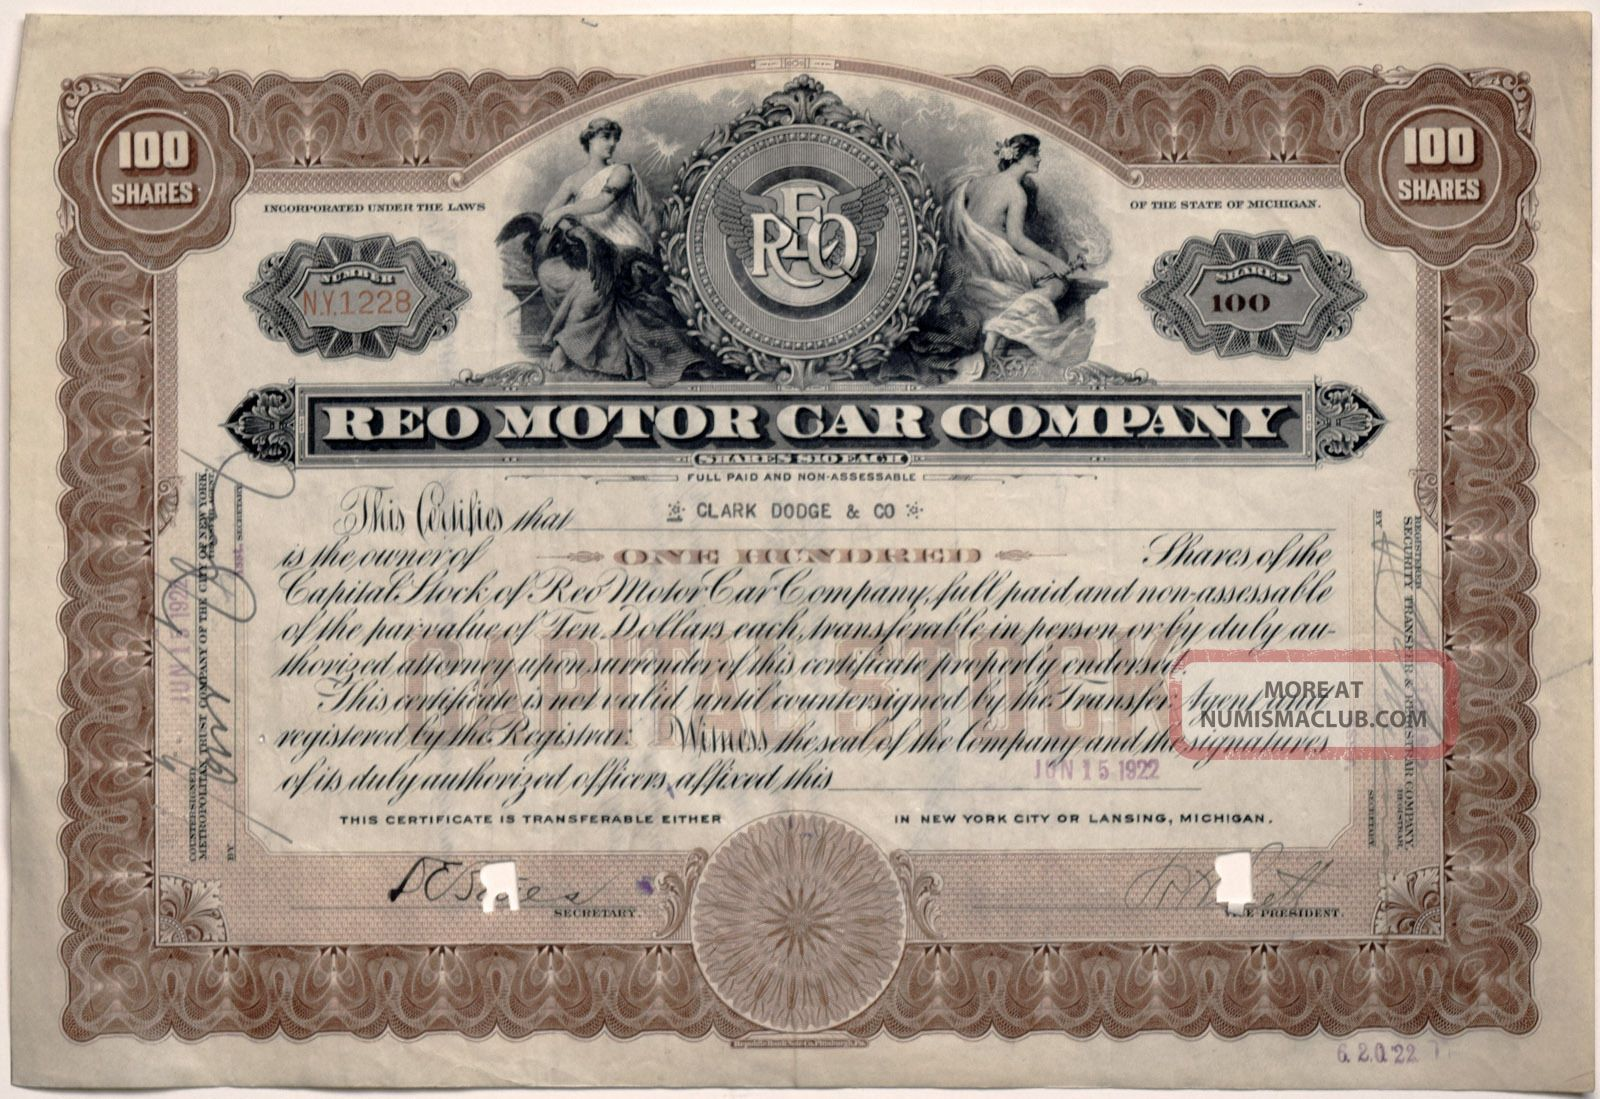 Reo Motor Car Company: 1922 Capital Stock Certificate For 100 Shares - N.  Y.  1228 Stocks & Bonds, Scripophily photo